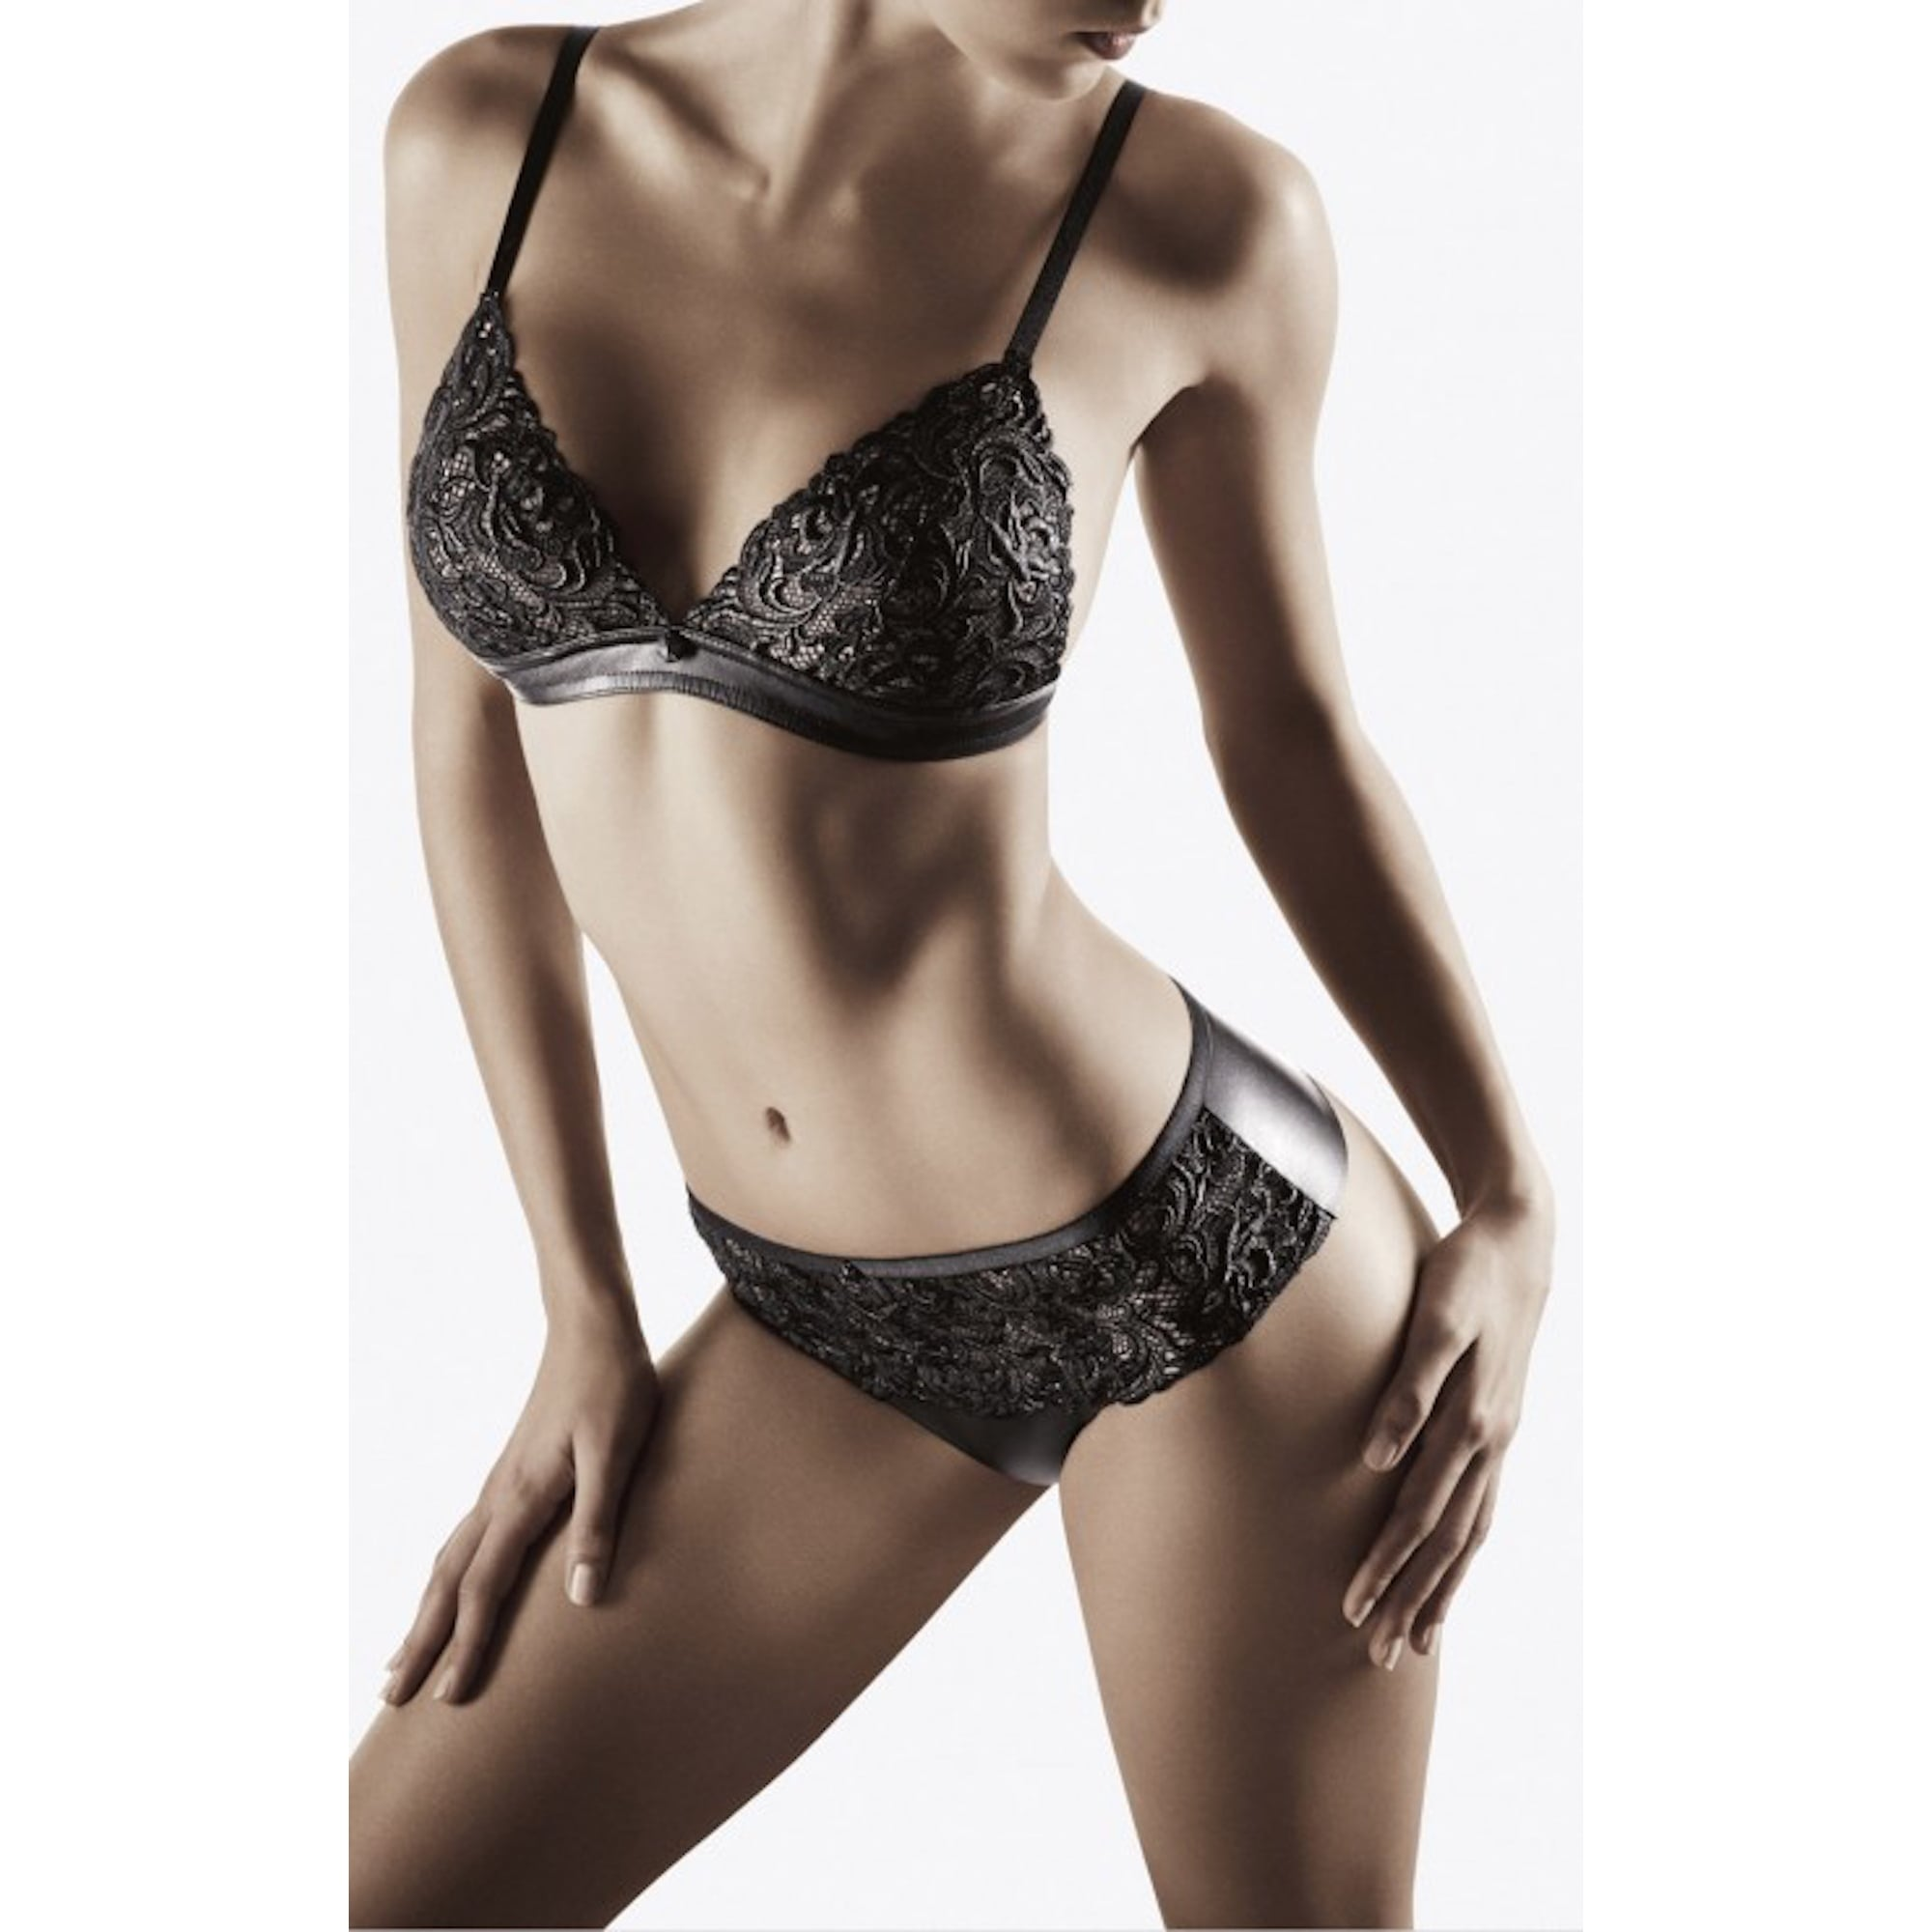 cuir de rose lace leather effect triangle bra night loungewear lingerie from the luxe. Black Bedroom Furniture Sets. Home Design Ideas